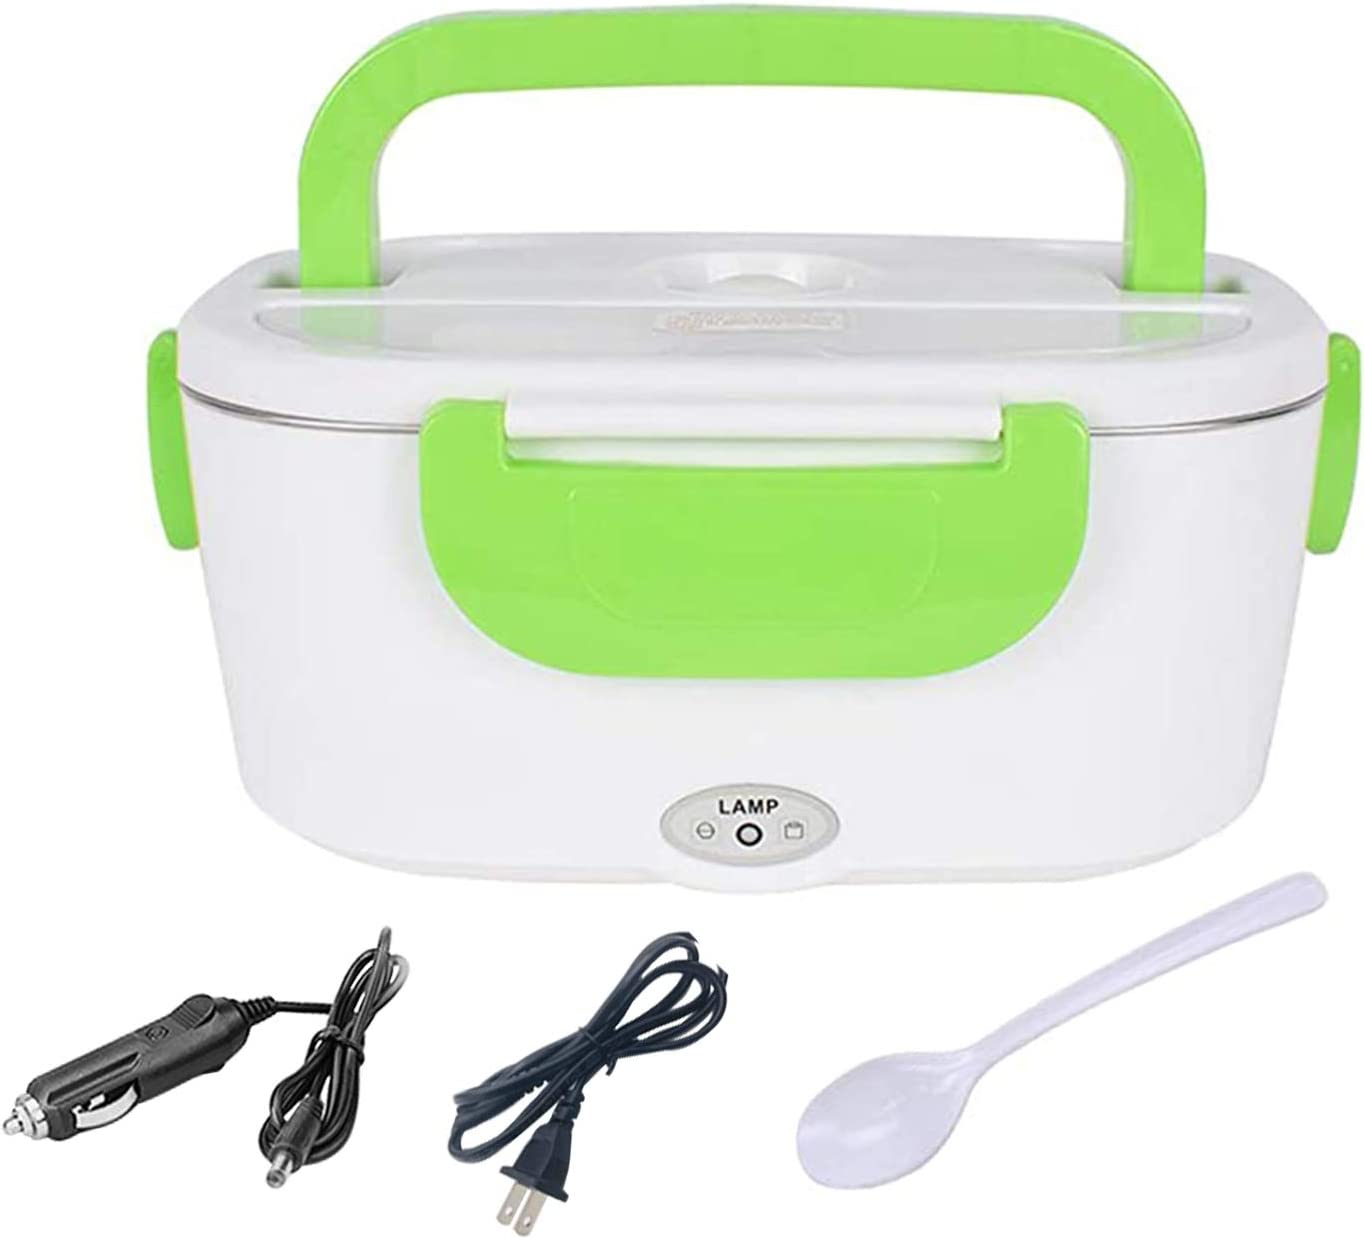 Jukoclut Electric Lunch Box Portable Food Heater Warmer 2 in 1 for Home Car Office Travel Use 12V 110V with Removable 15.L Stainless Steel Container Spoon and 2 Compartments Green